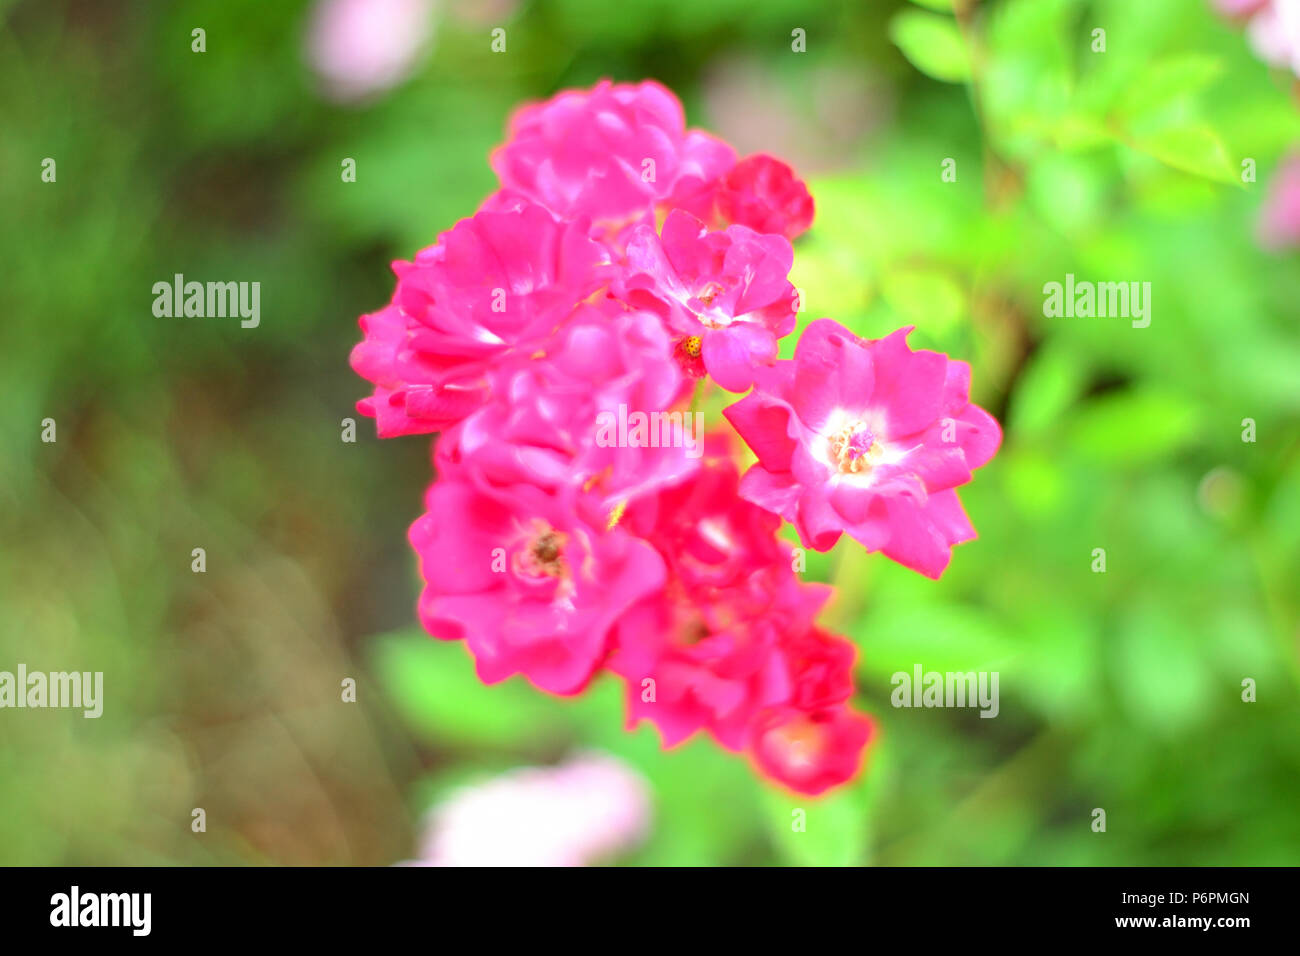 Lantana Kopen Knop Stock Photos Knop Stock Images Page 2 Alamy